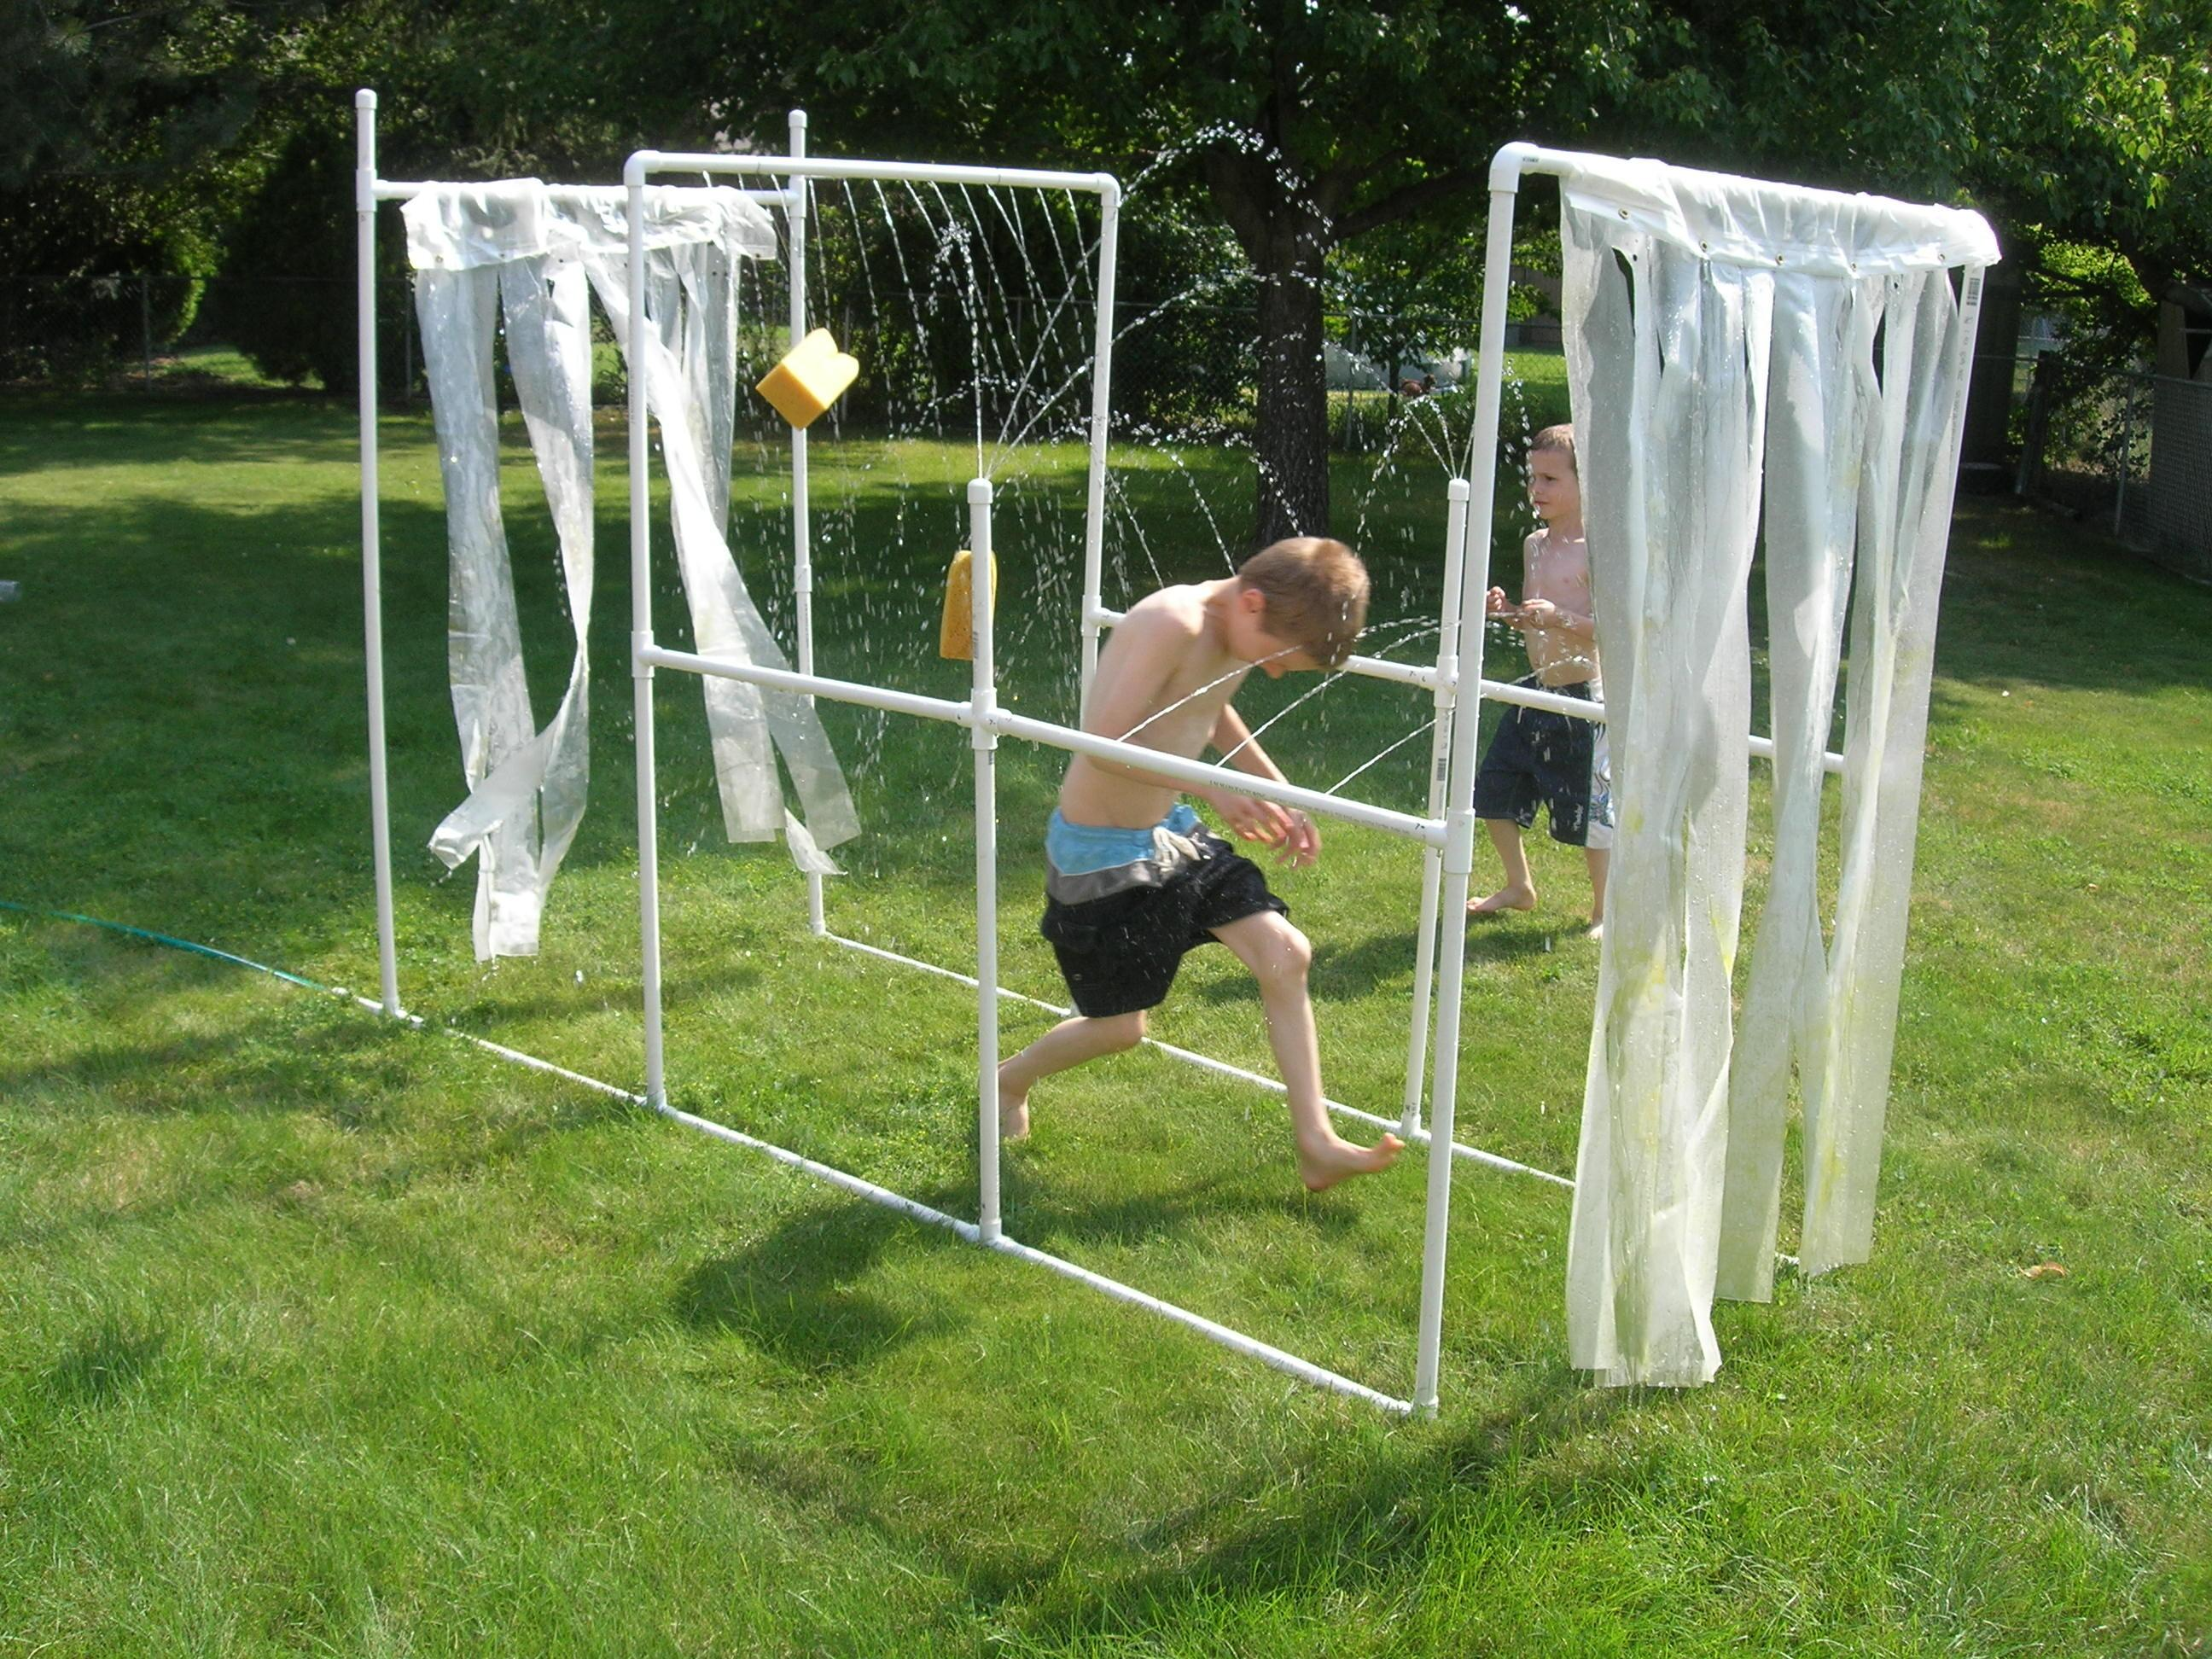 Diy Showcase Pvc Pipe Projects